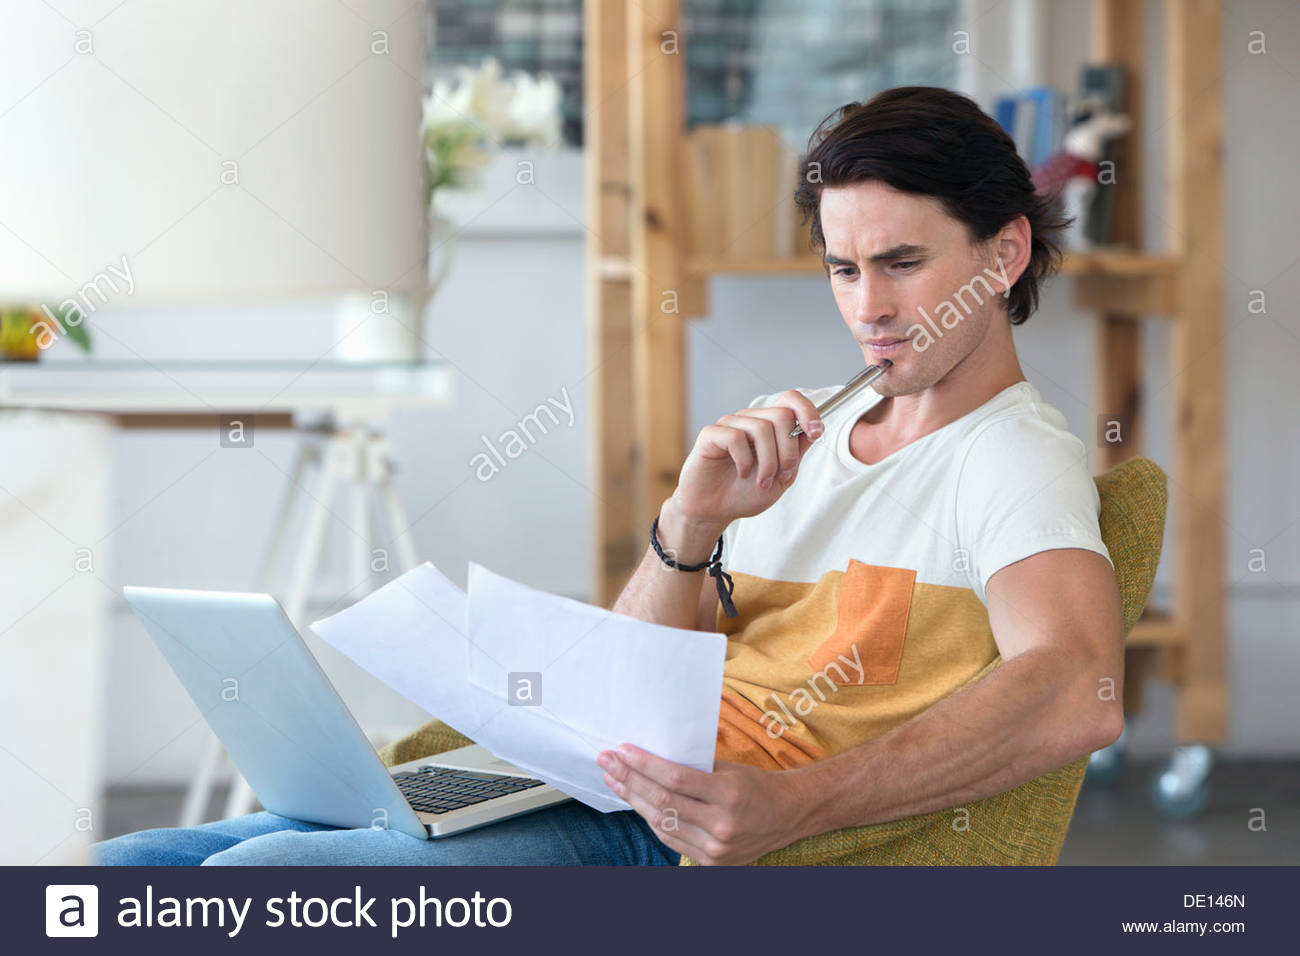 Concerné man with laptop looking down at paperwork in armchair Photo Stock